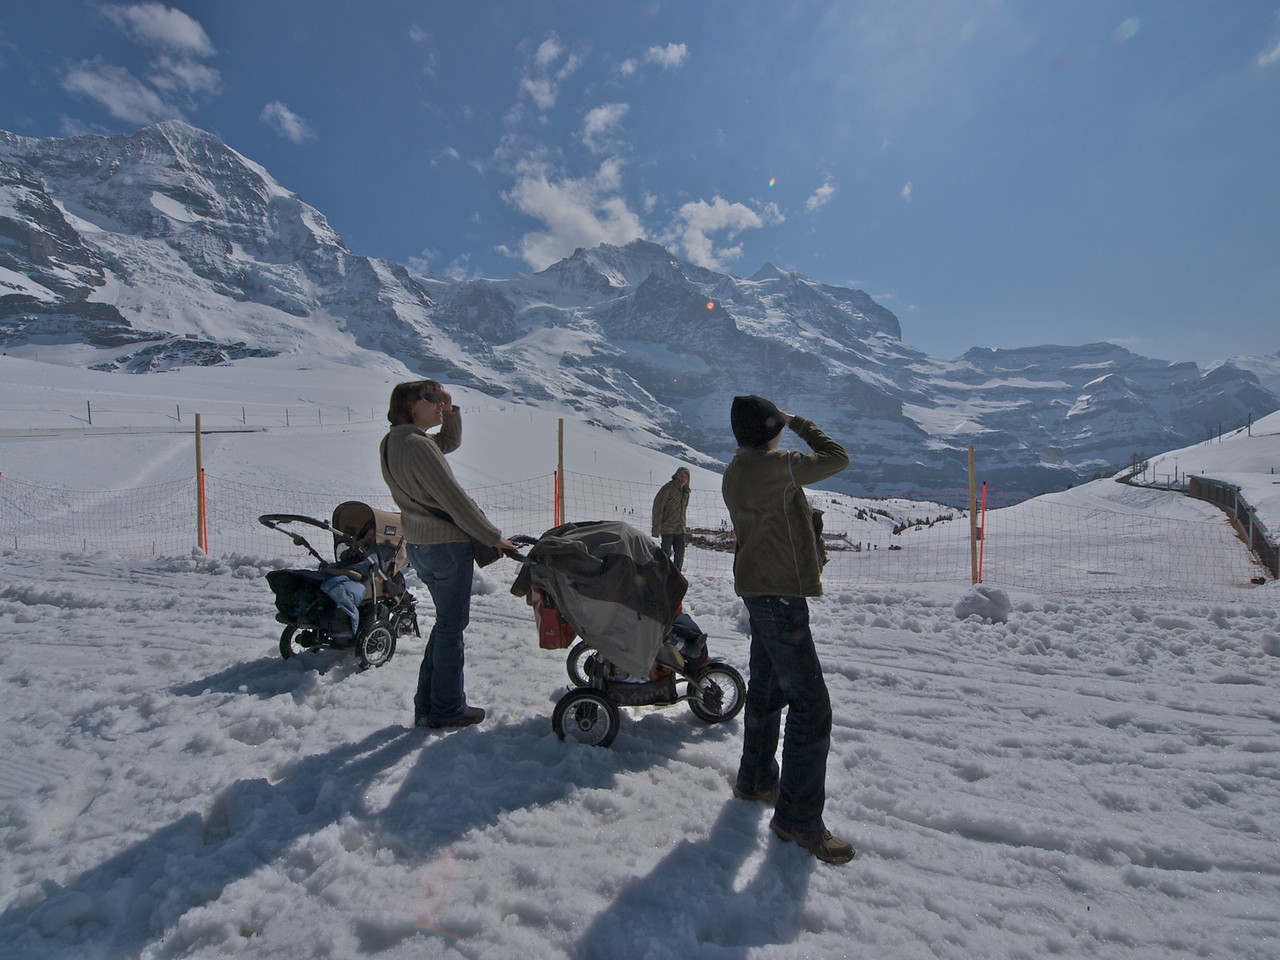 Sunday 5th April 2009 - I am not sure what they are looking at the paraglider is behind them, but later we discuss pushing the prams down to the next station, but decide that the snow is too soft and take the train